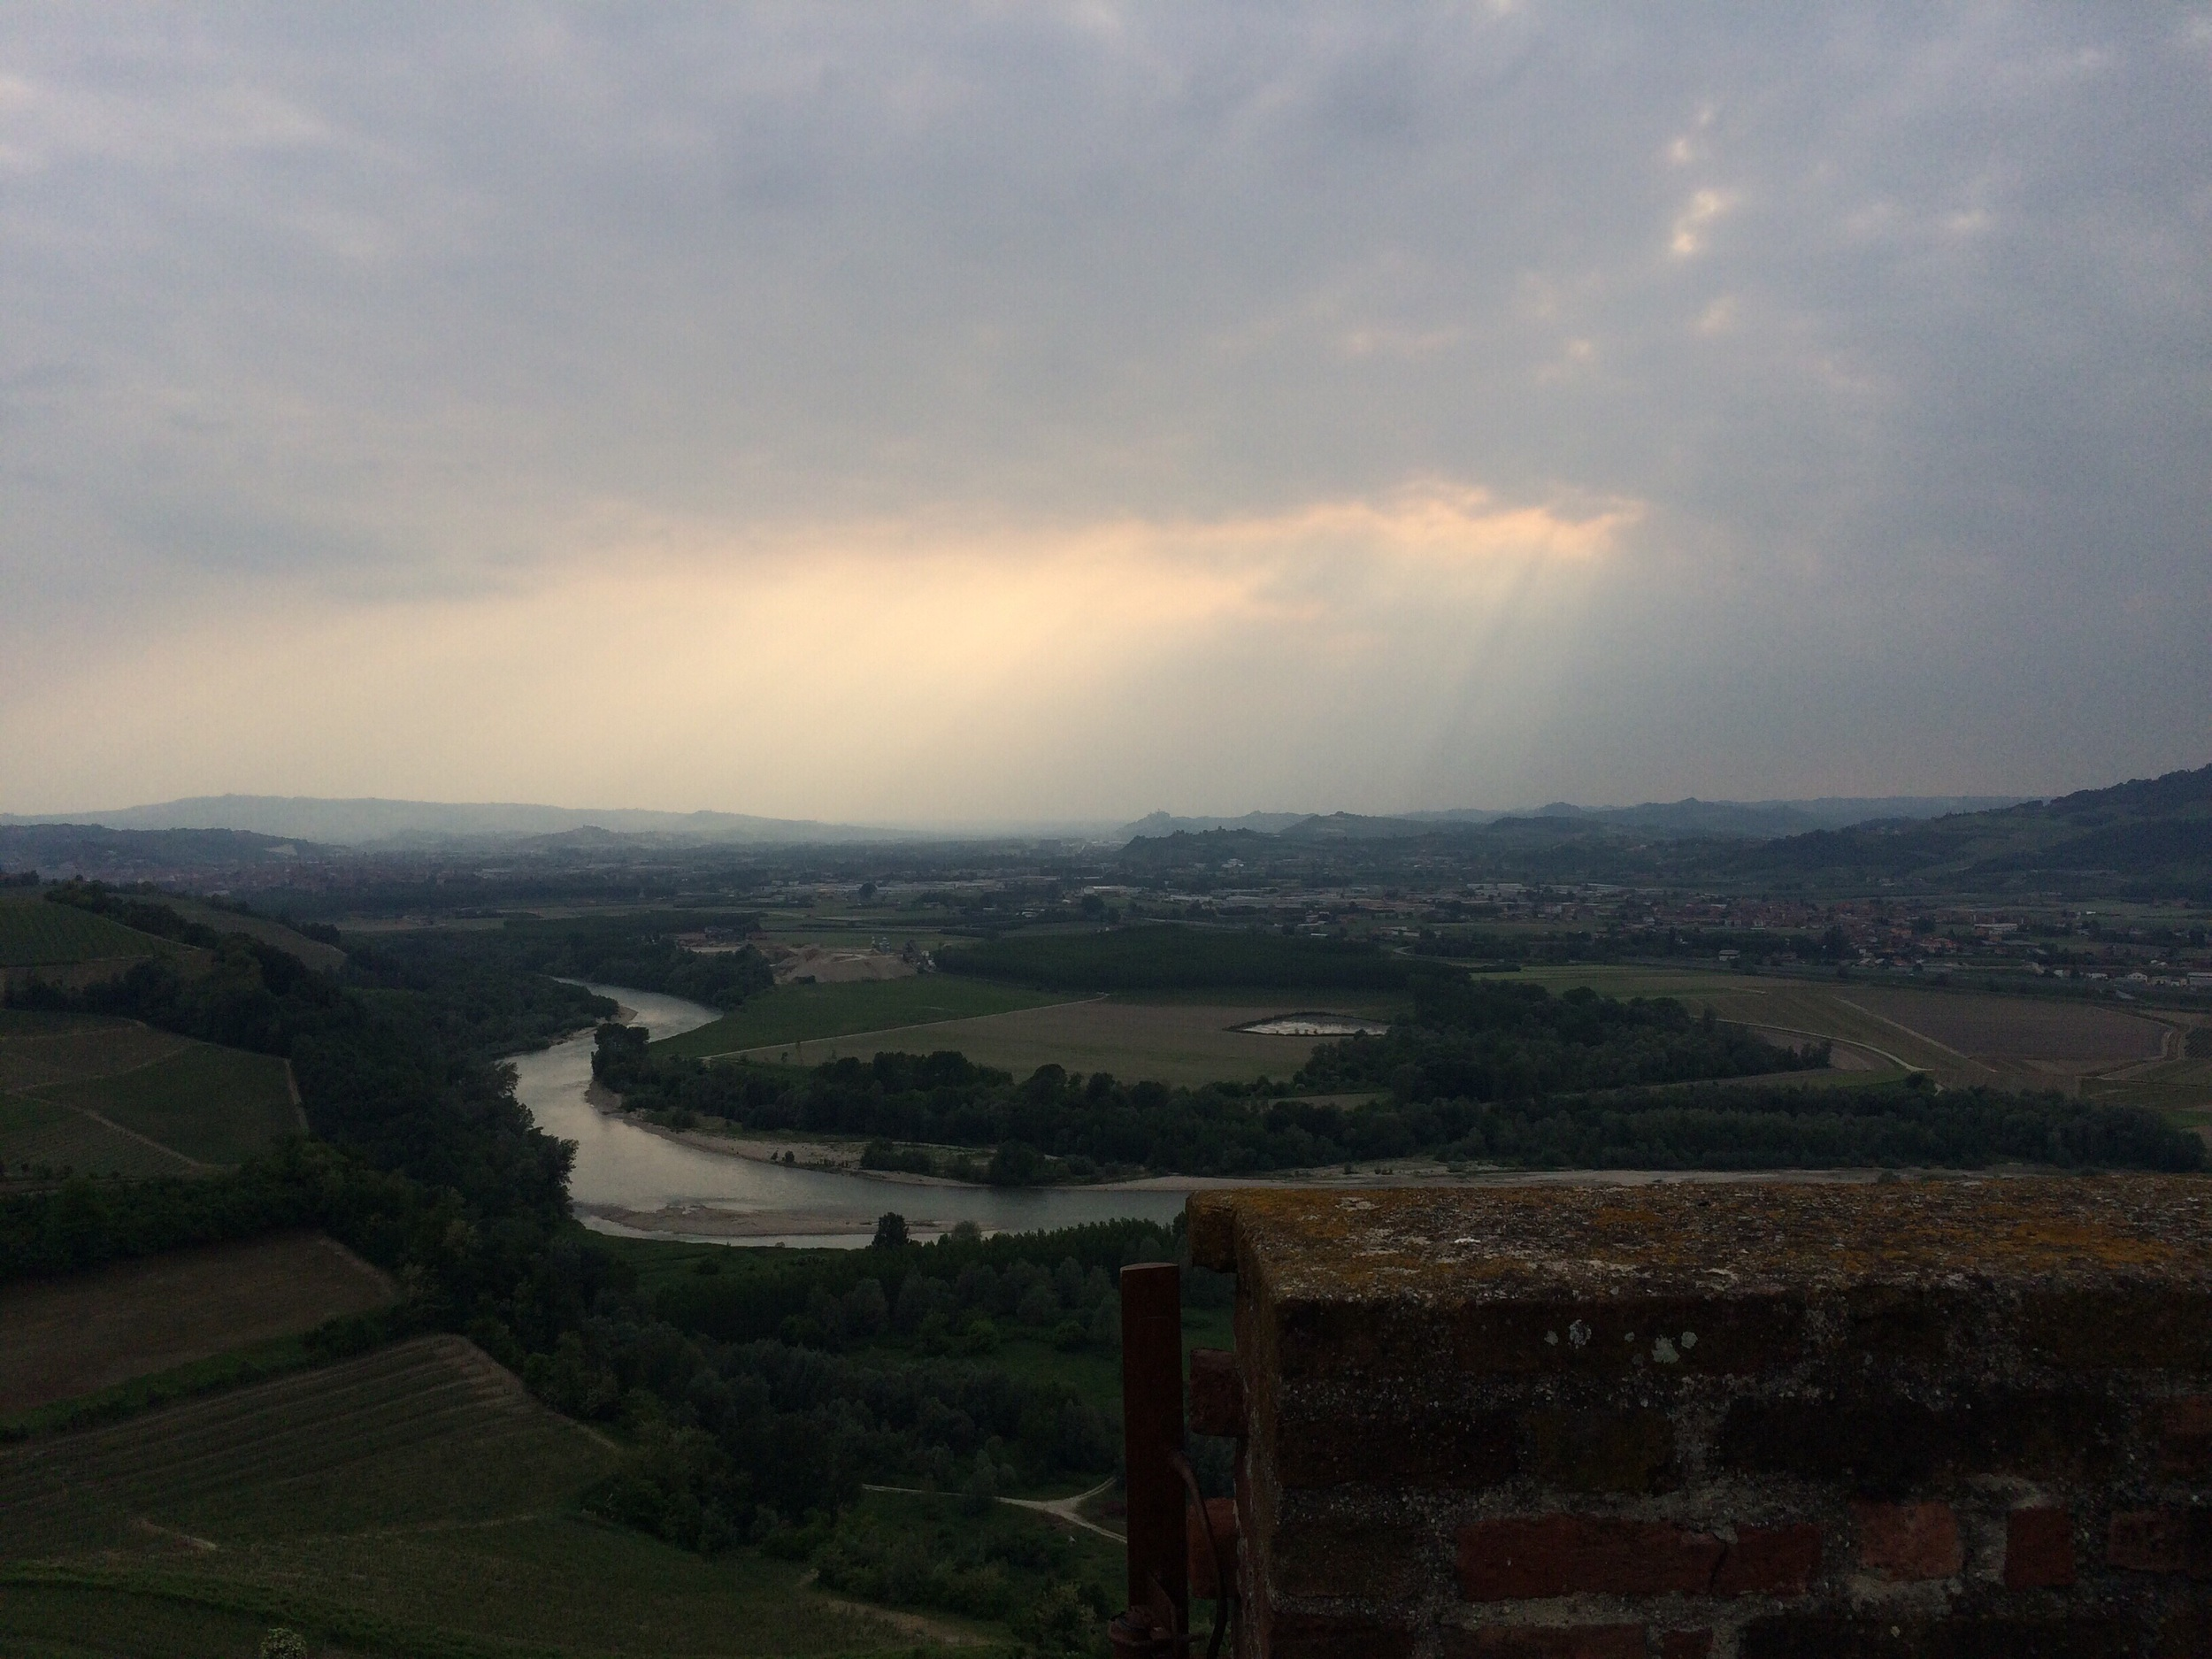 The Tanaro River viewed from Barbaresco